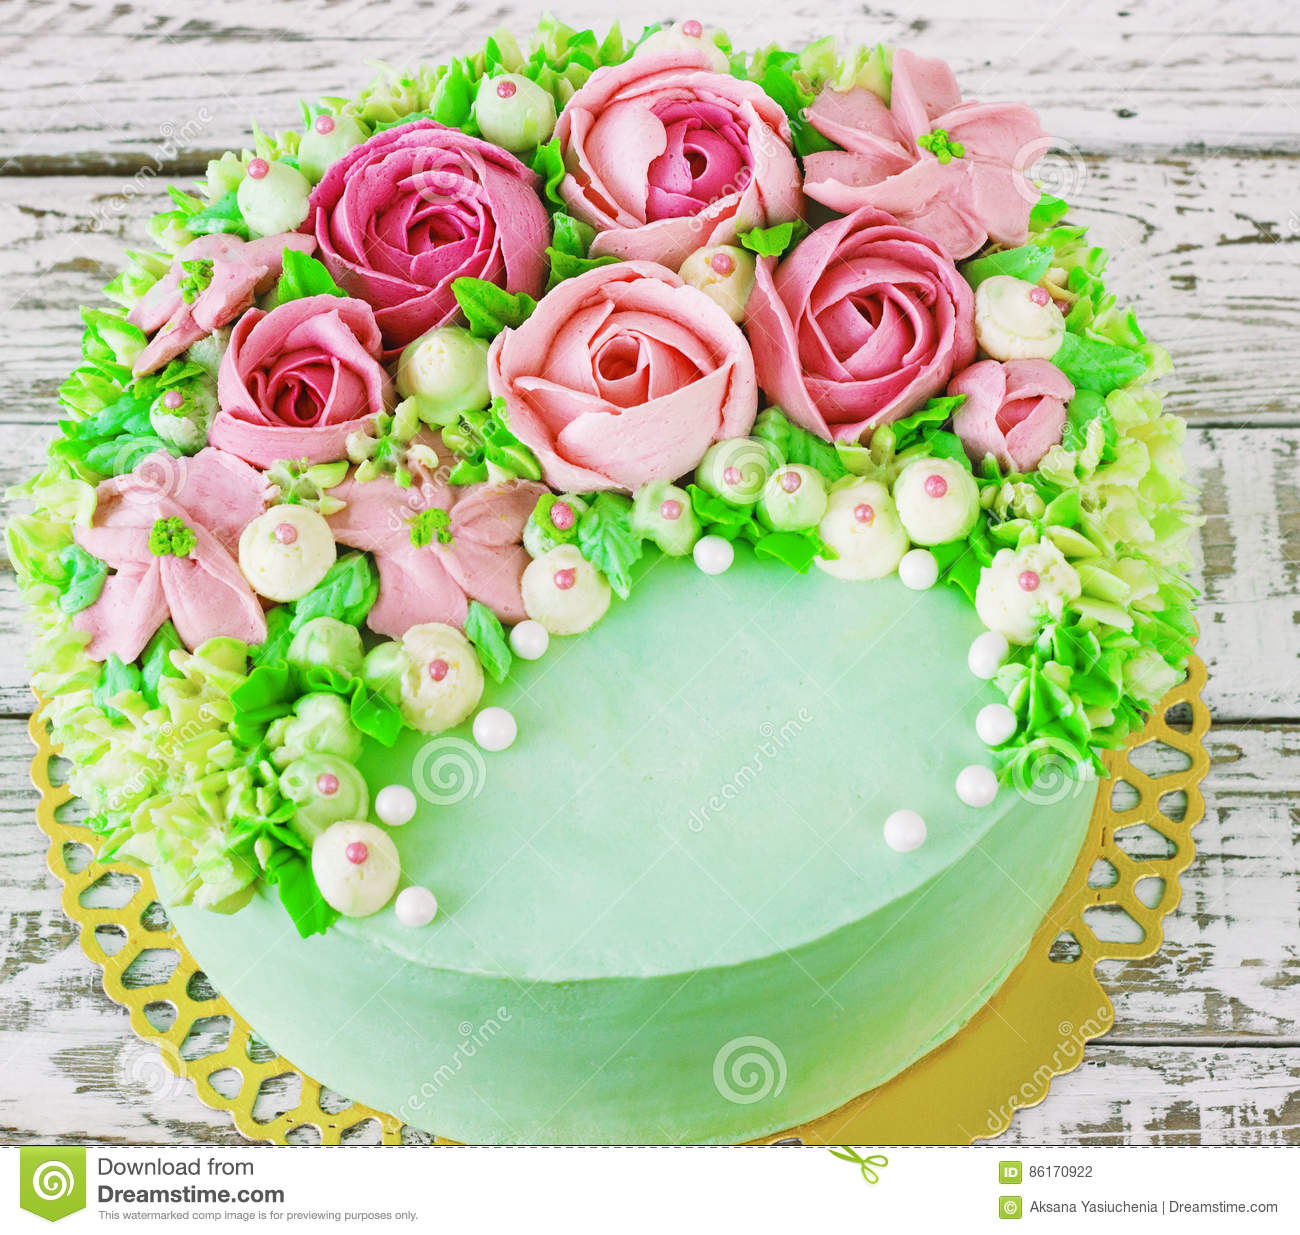 Birthday cake with flowers rose on white background stock photo birthday cake with flowers rose on white background izmirmasajfo